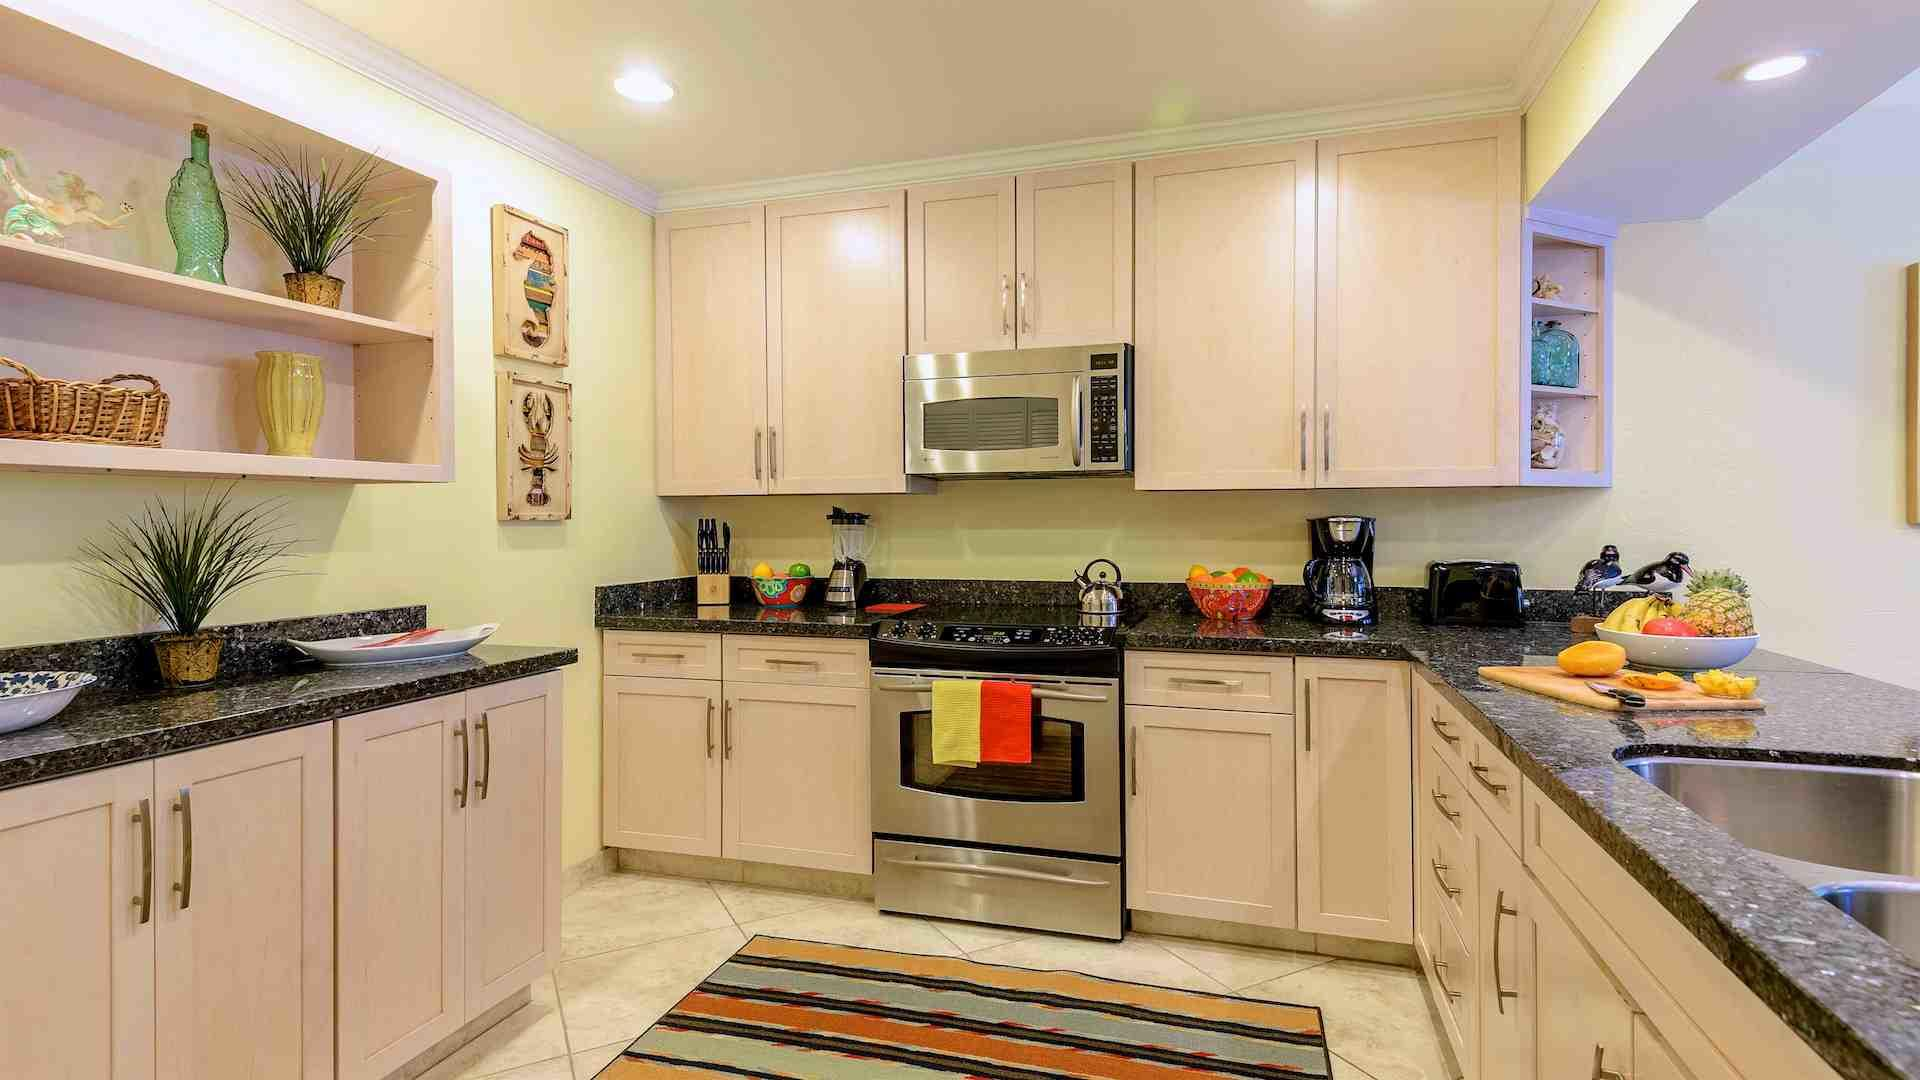 The kitchen has been fully upgraded & completely equipped to prepare any meal...